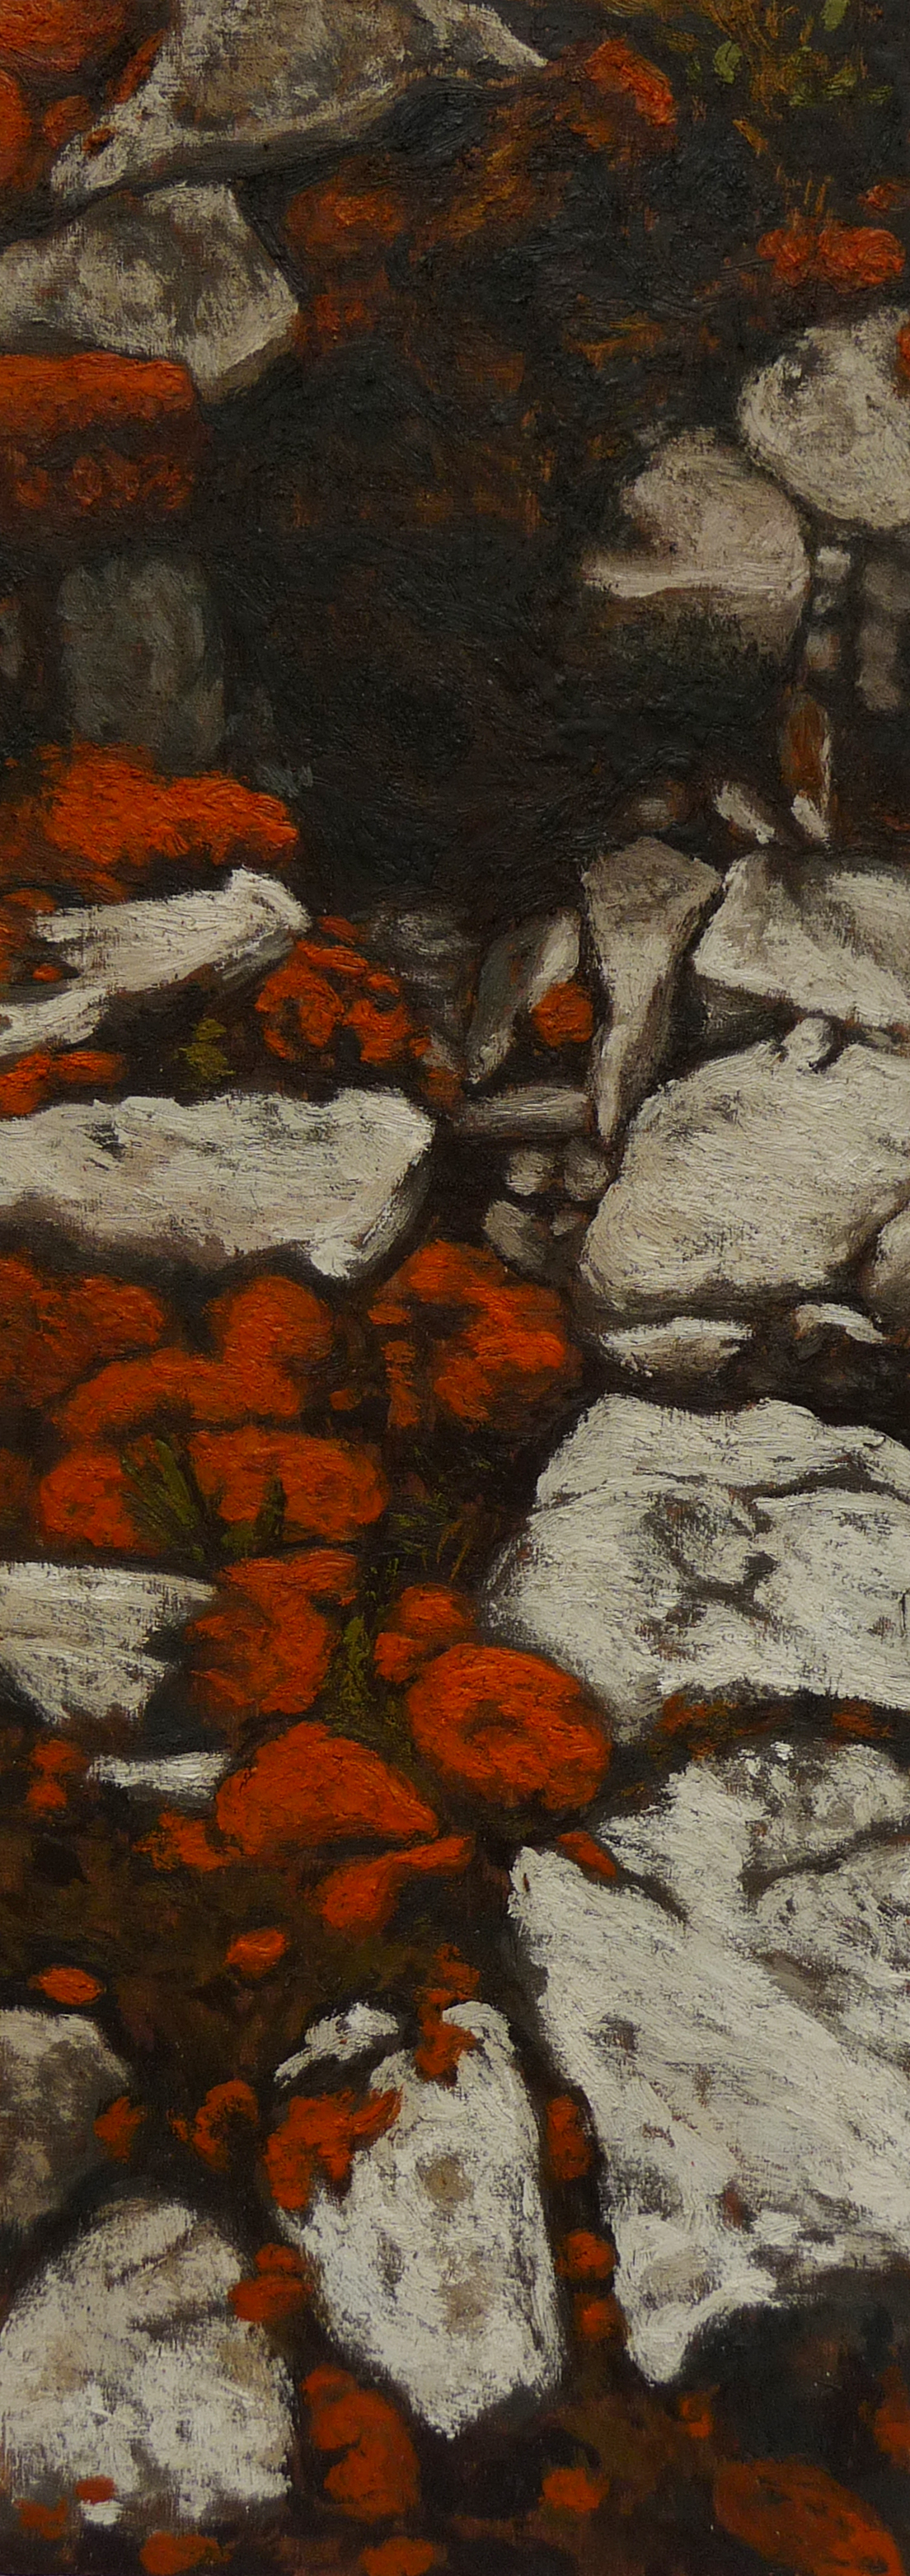 <p><strong>Orange moss 2            SOLD</strong><br />Encaustic on wood, 35 x 12,5 cm</p>